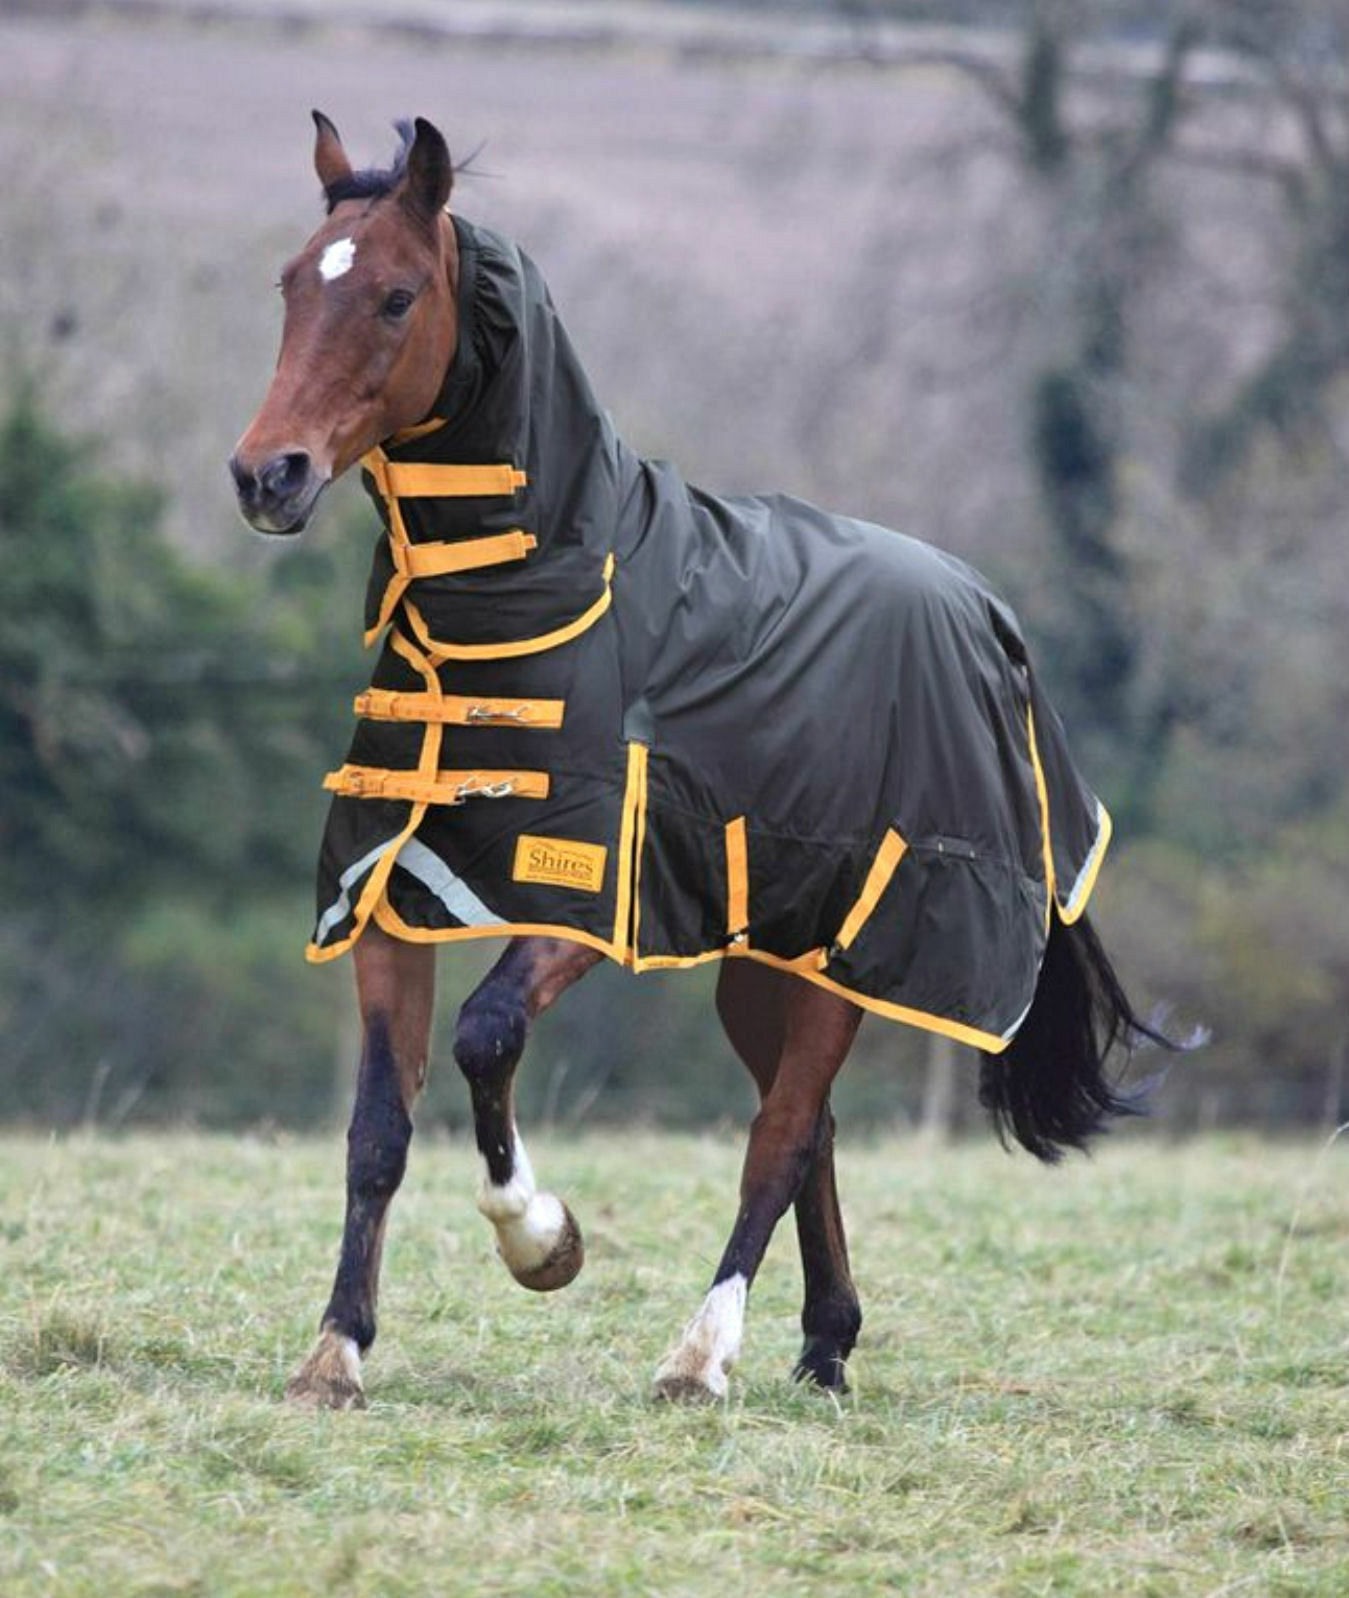 New shires combo stormbreaker combo shires heavyweight 300g winter turnout rug CLEARANCE 3360b6